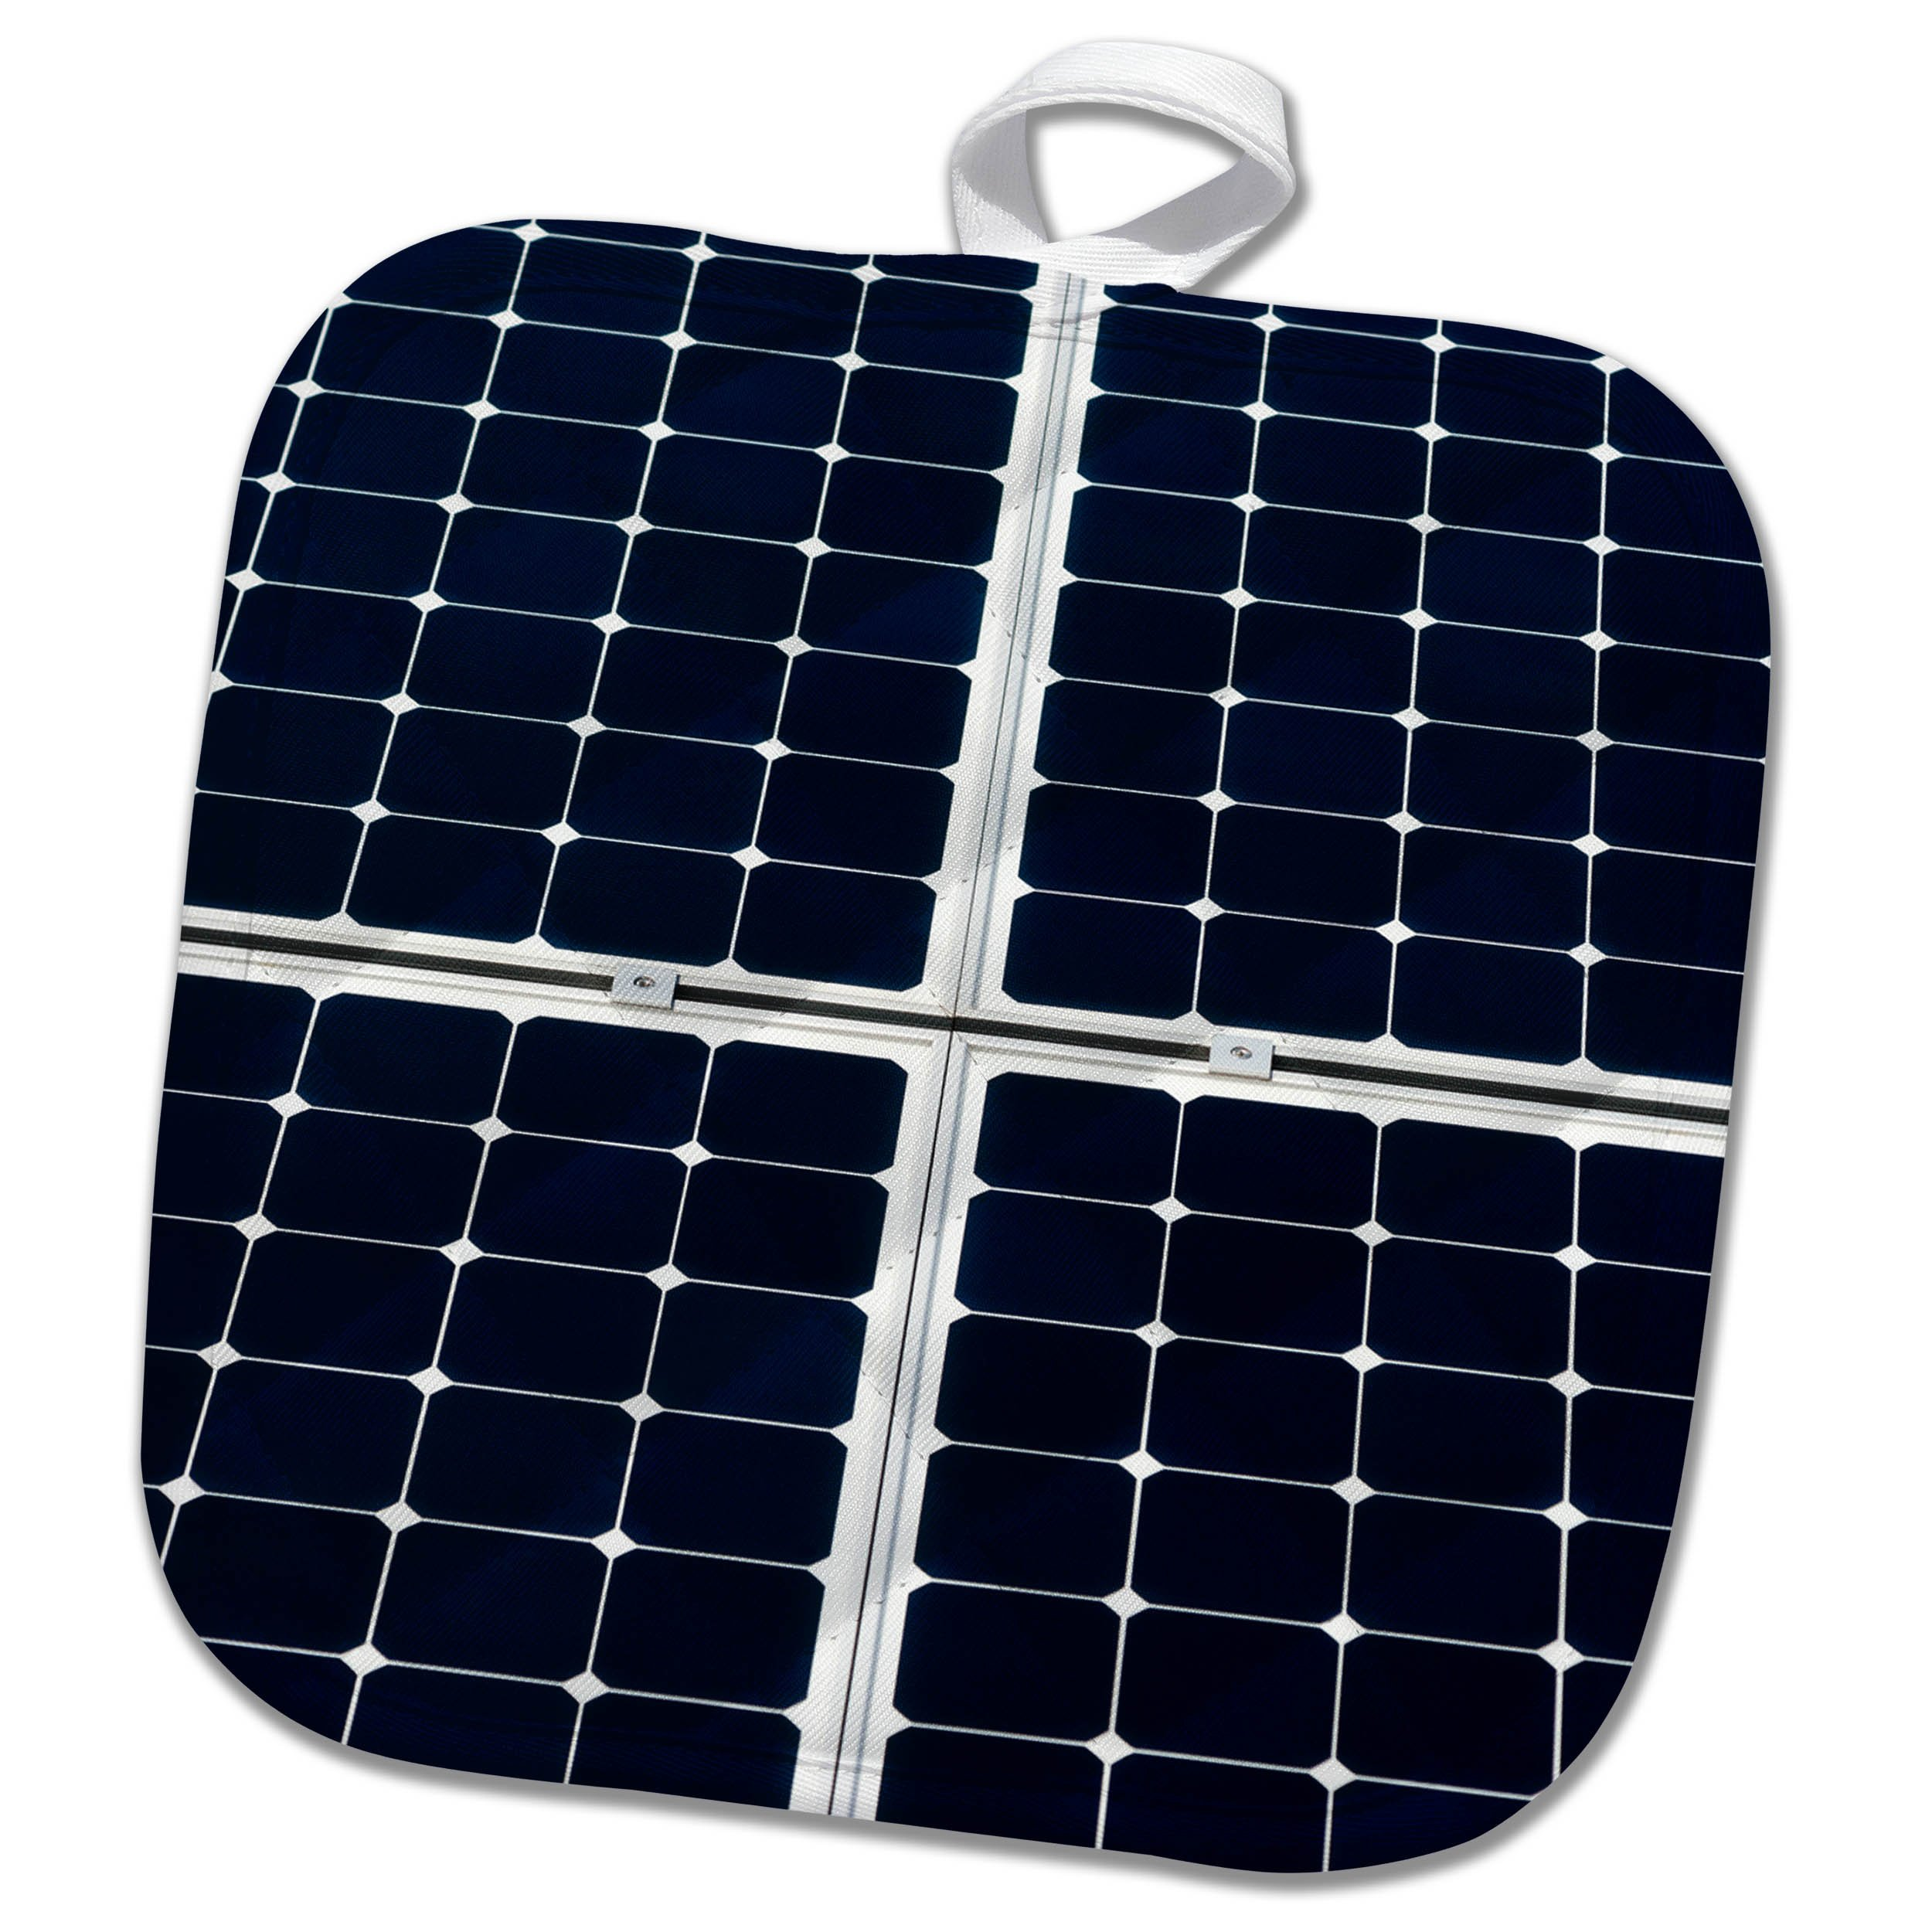 3dRose Alexis Photography - Objects - Dark blue solar power panel divided into four parts by white frames - 8x8 Potholder (phl_271345_1)